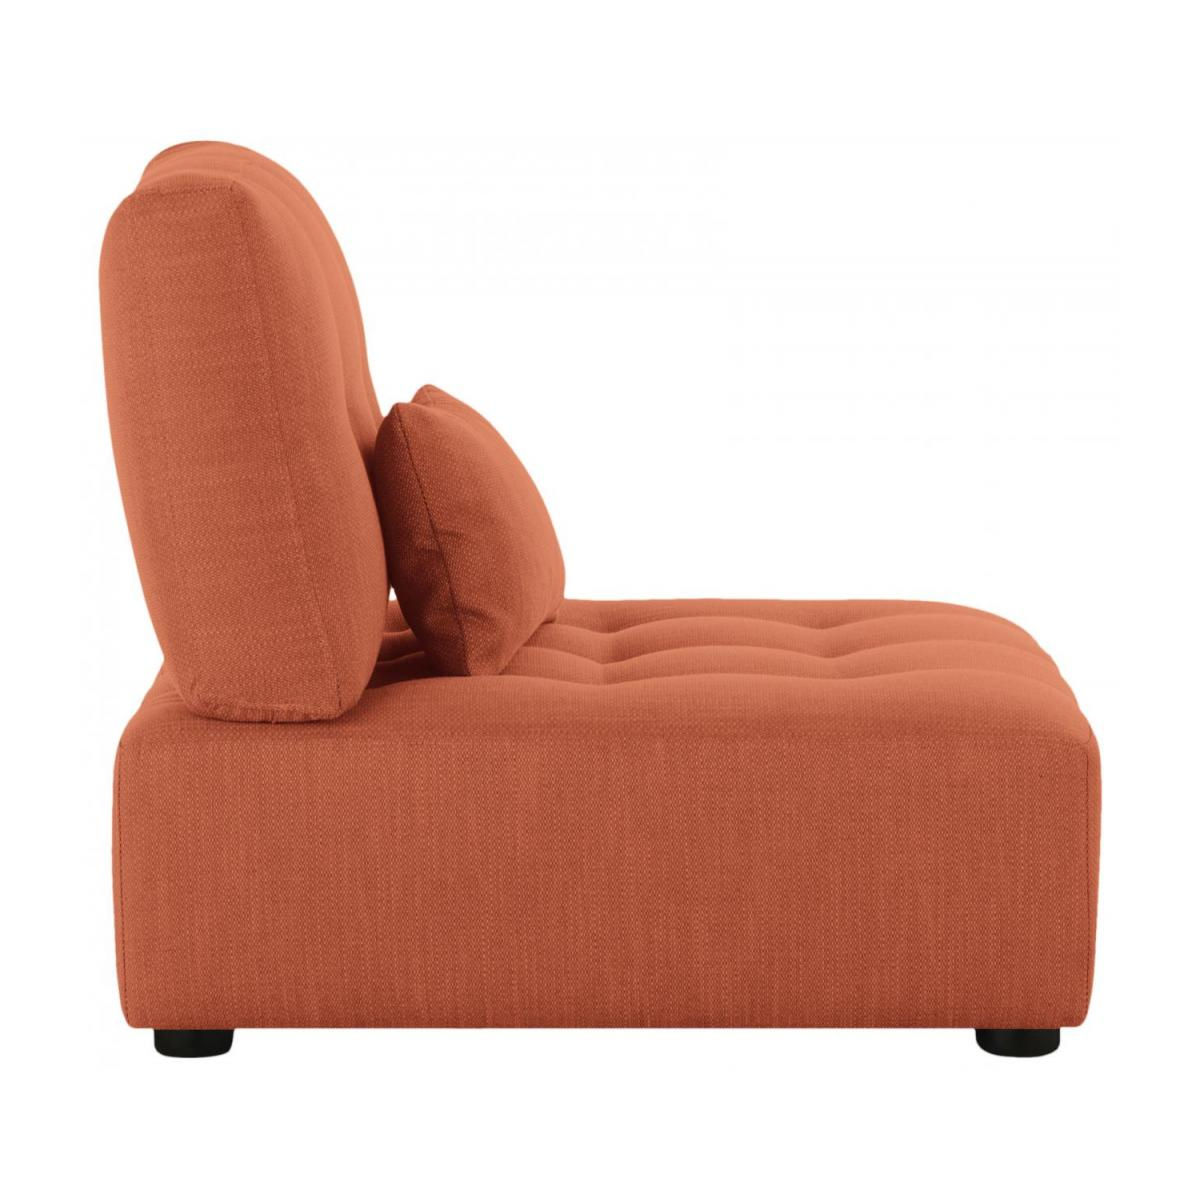 Sitzelement aus Stoff, orange n°3